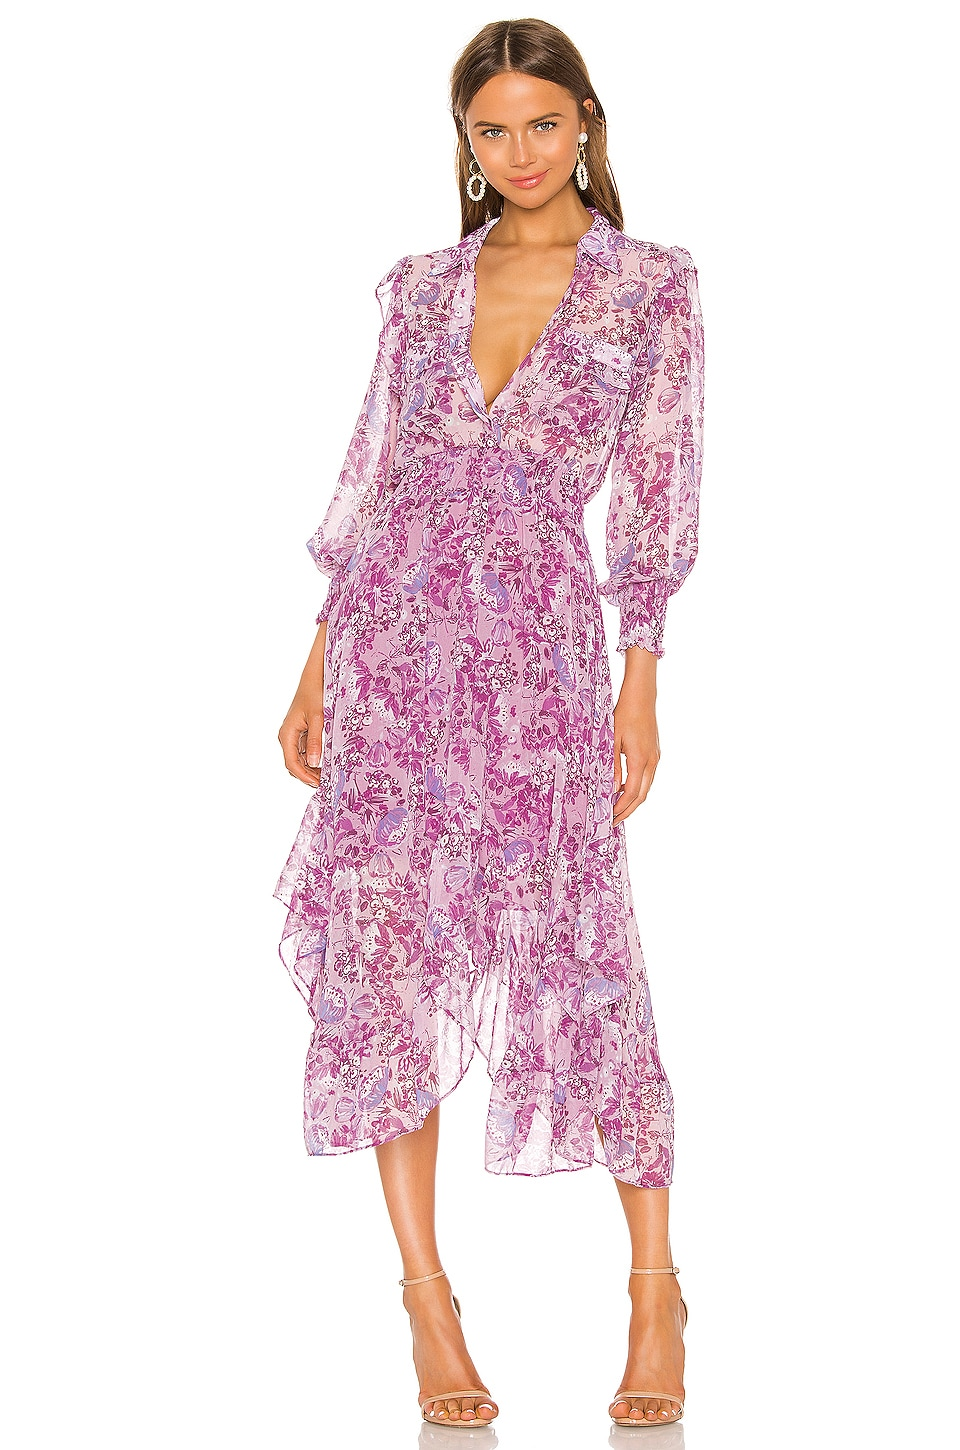 MISA Los Angeles Kaiya Dress in Lilac Floral